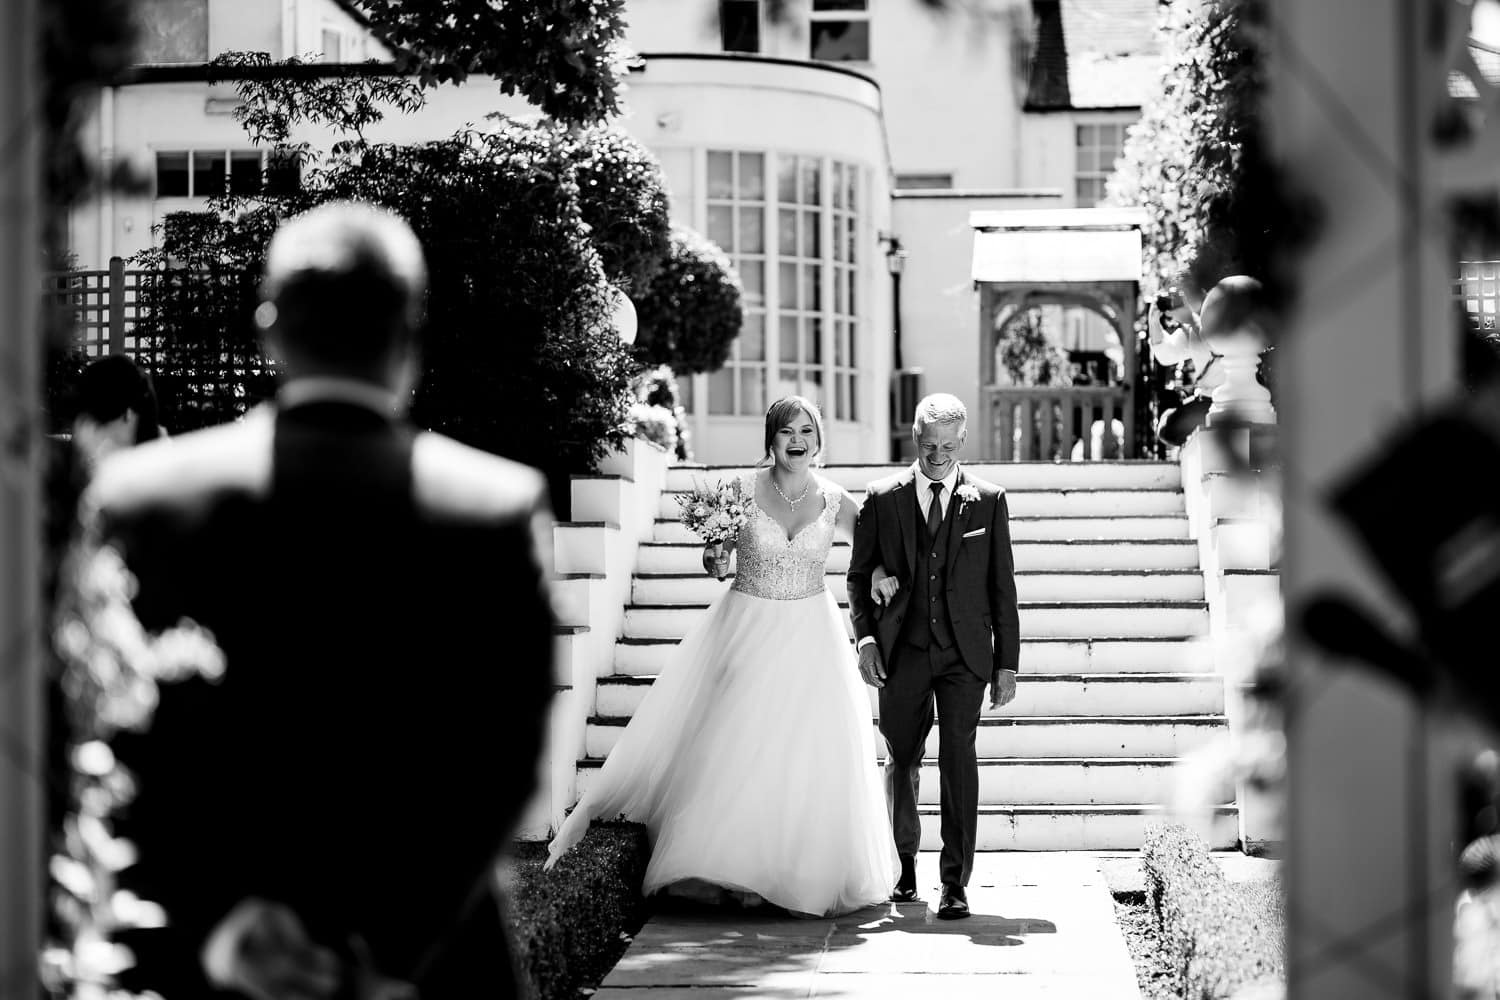 Warwick House Wedding Photography captures dad and daughter laughing together whilst walking down the aisle